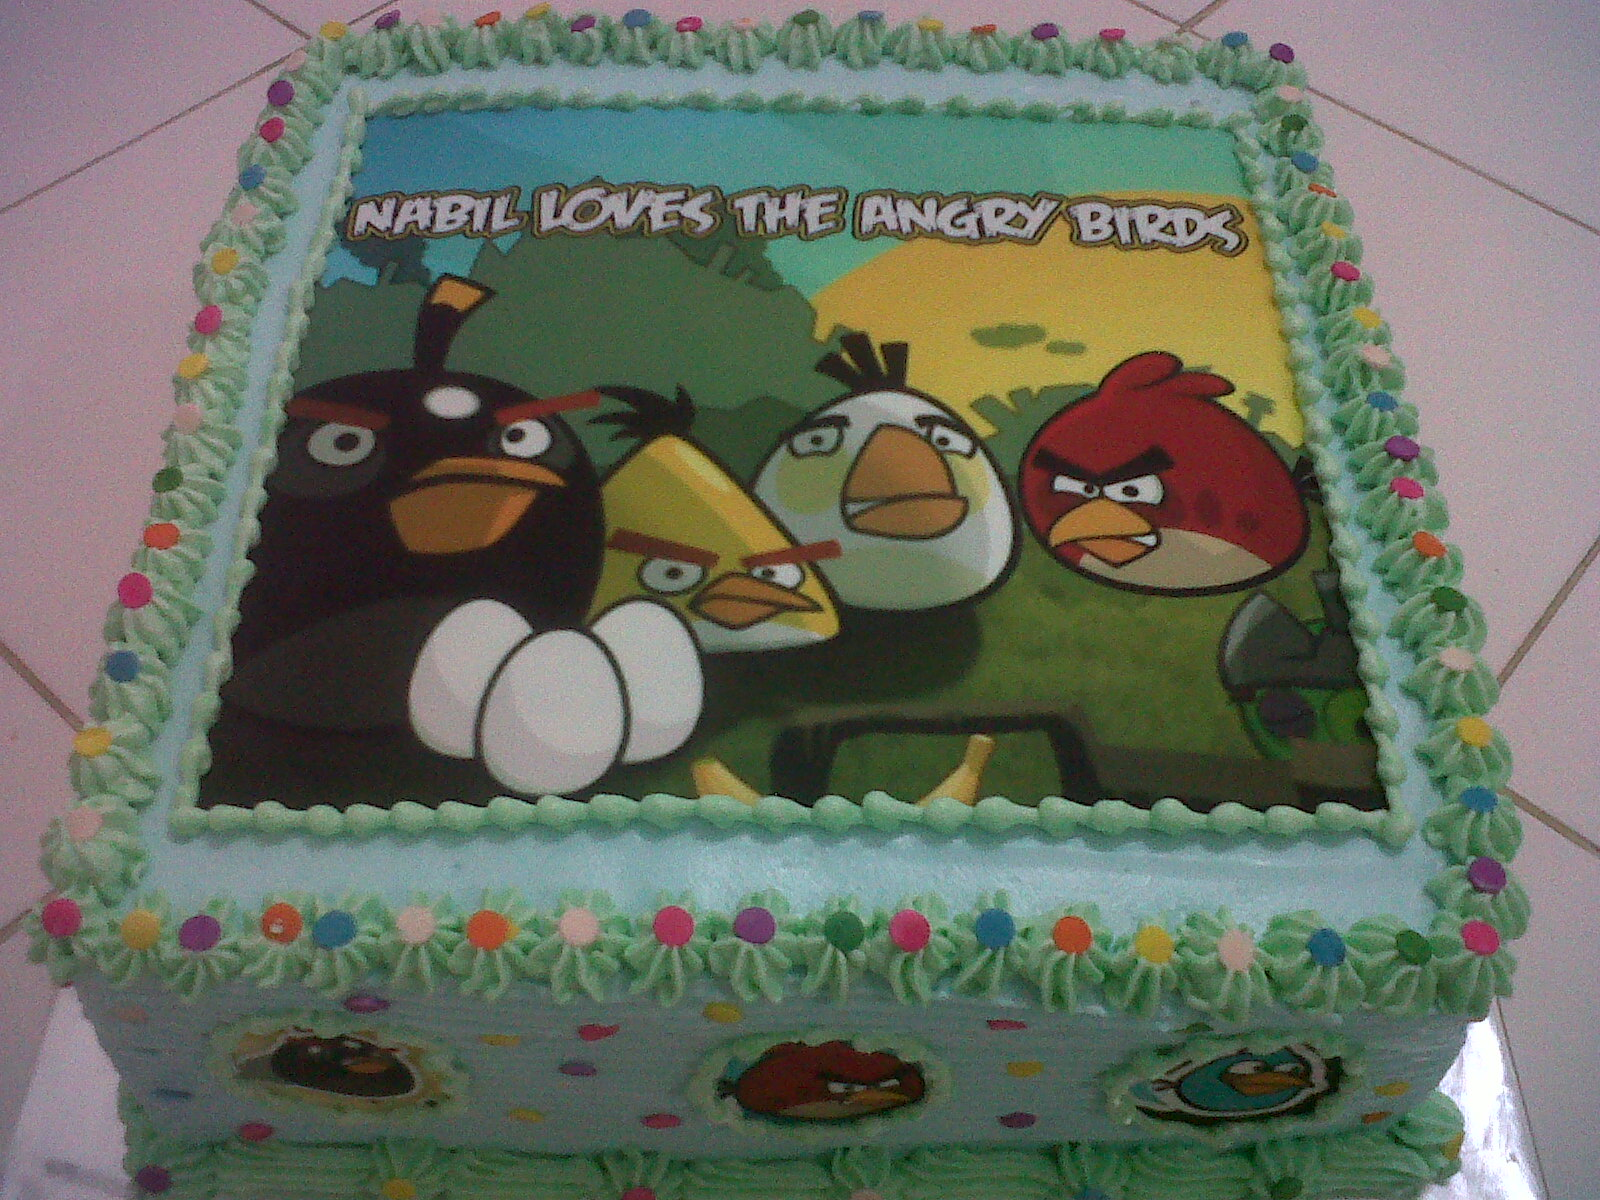 Joris Kitchen Angry Bird Birthday Cake for Nabil